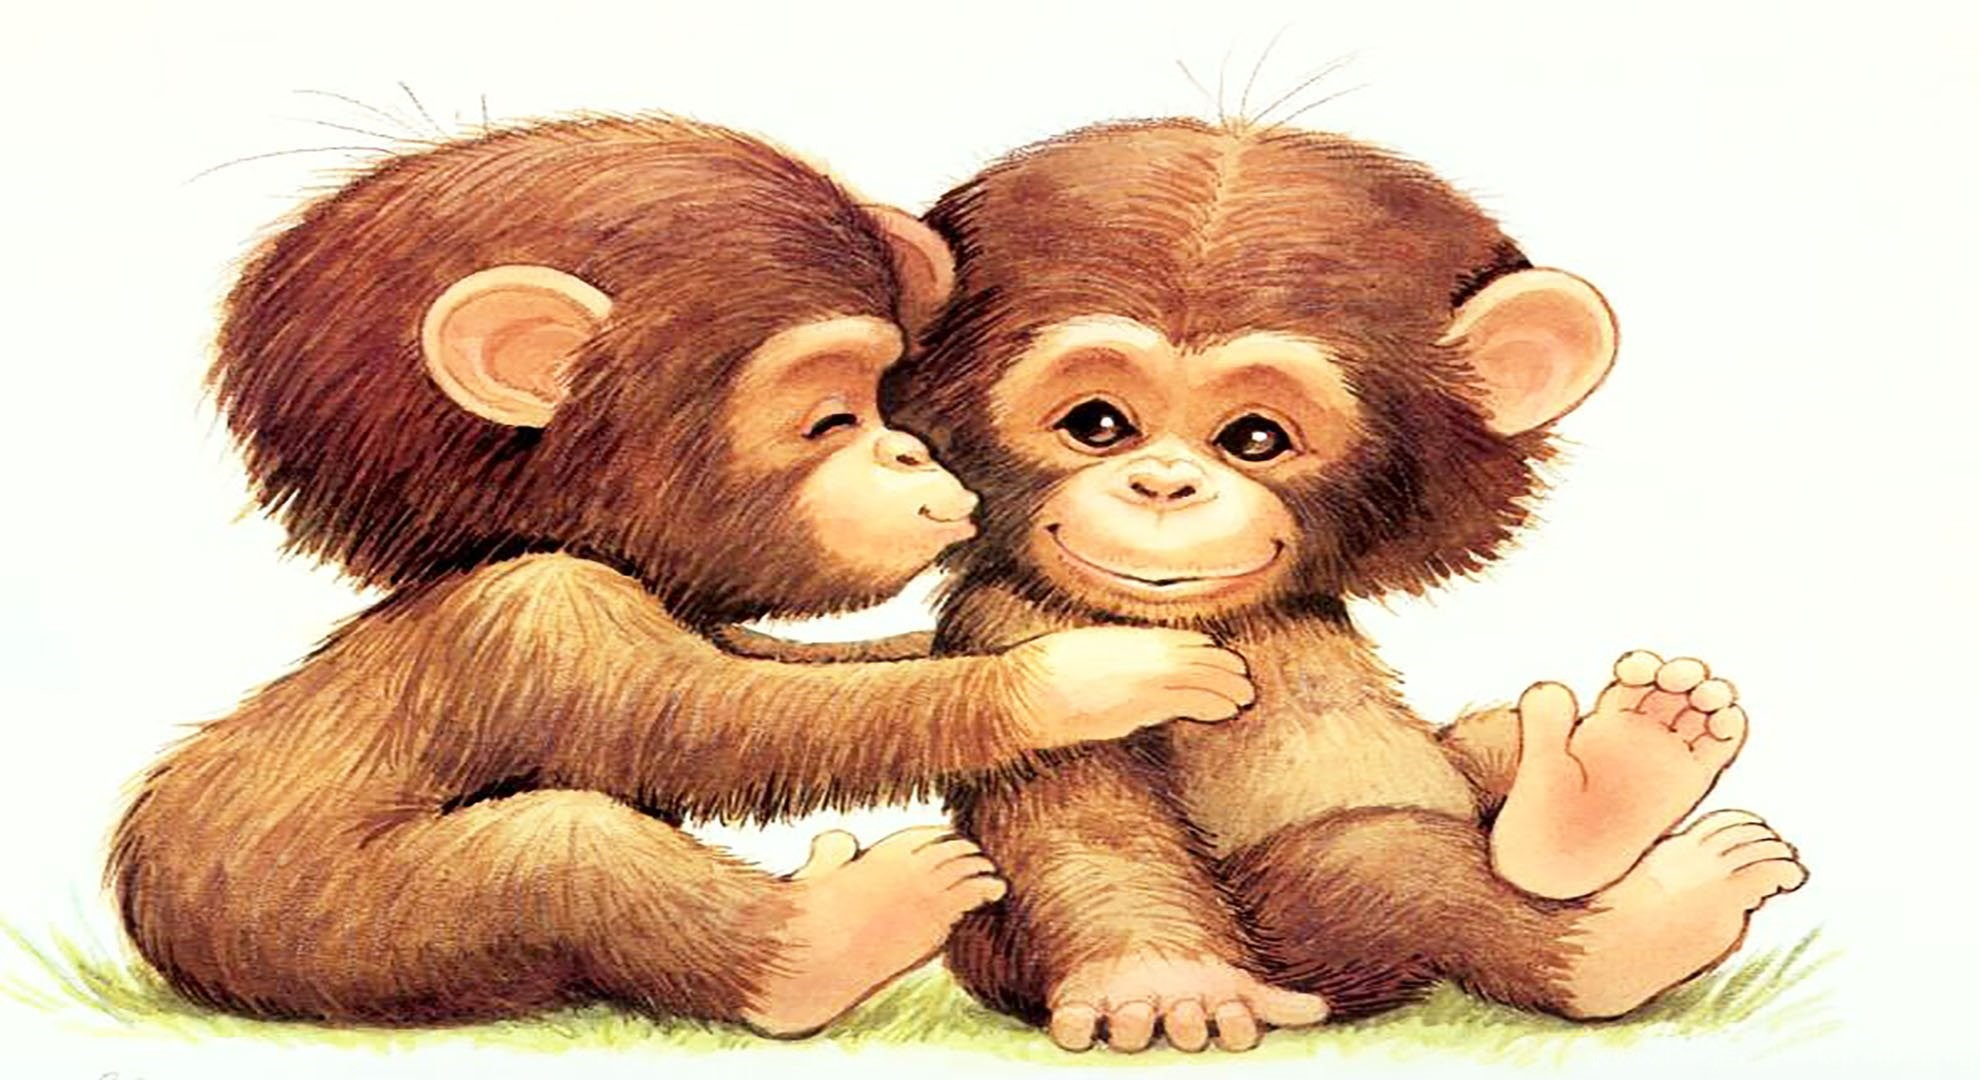 1980x1080 Cute Cartoon Monkey Wallpapers